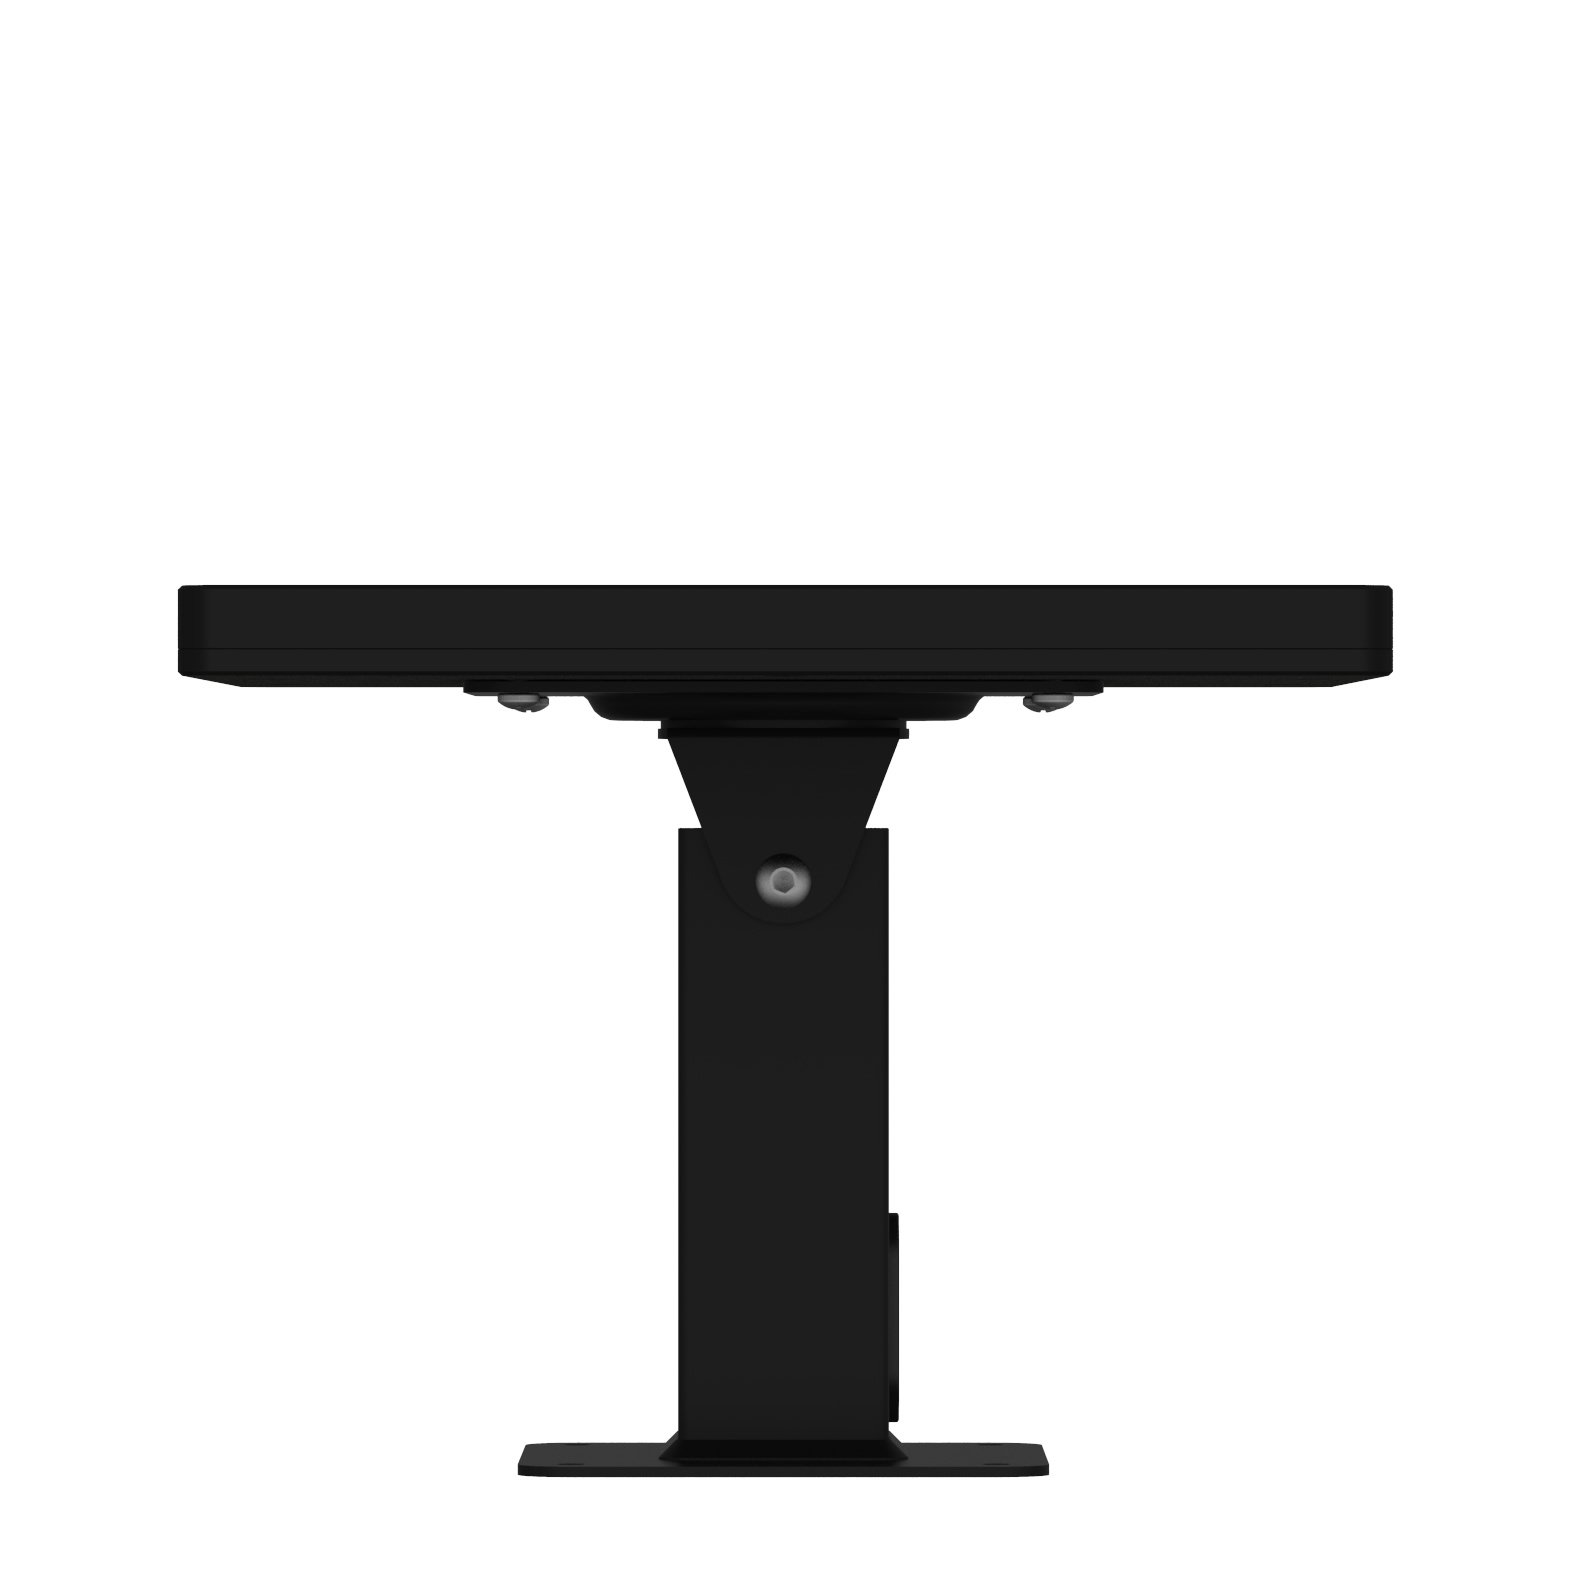 iPad (5th Gen) 9.7/Pro, Air 1/2 Black Covered Home Button Rotating & Tilting Desk/Table Mount [Bundle] by VidaMount (Image #4)